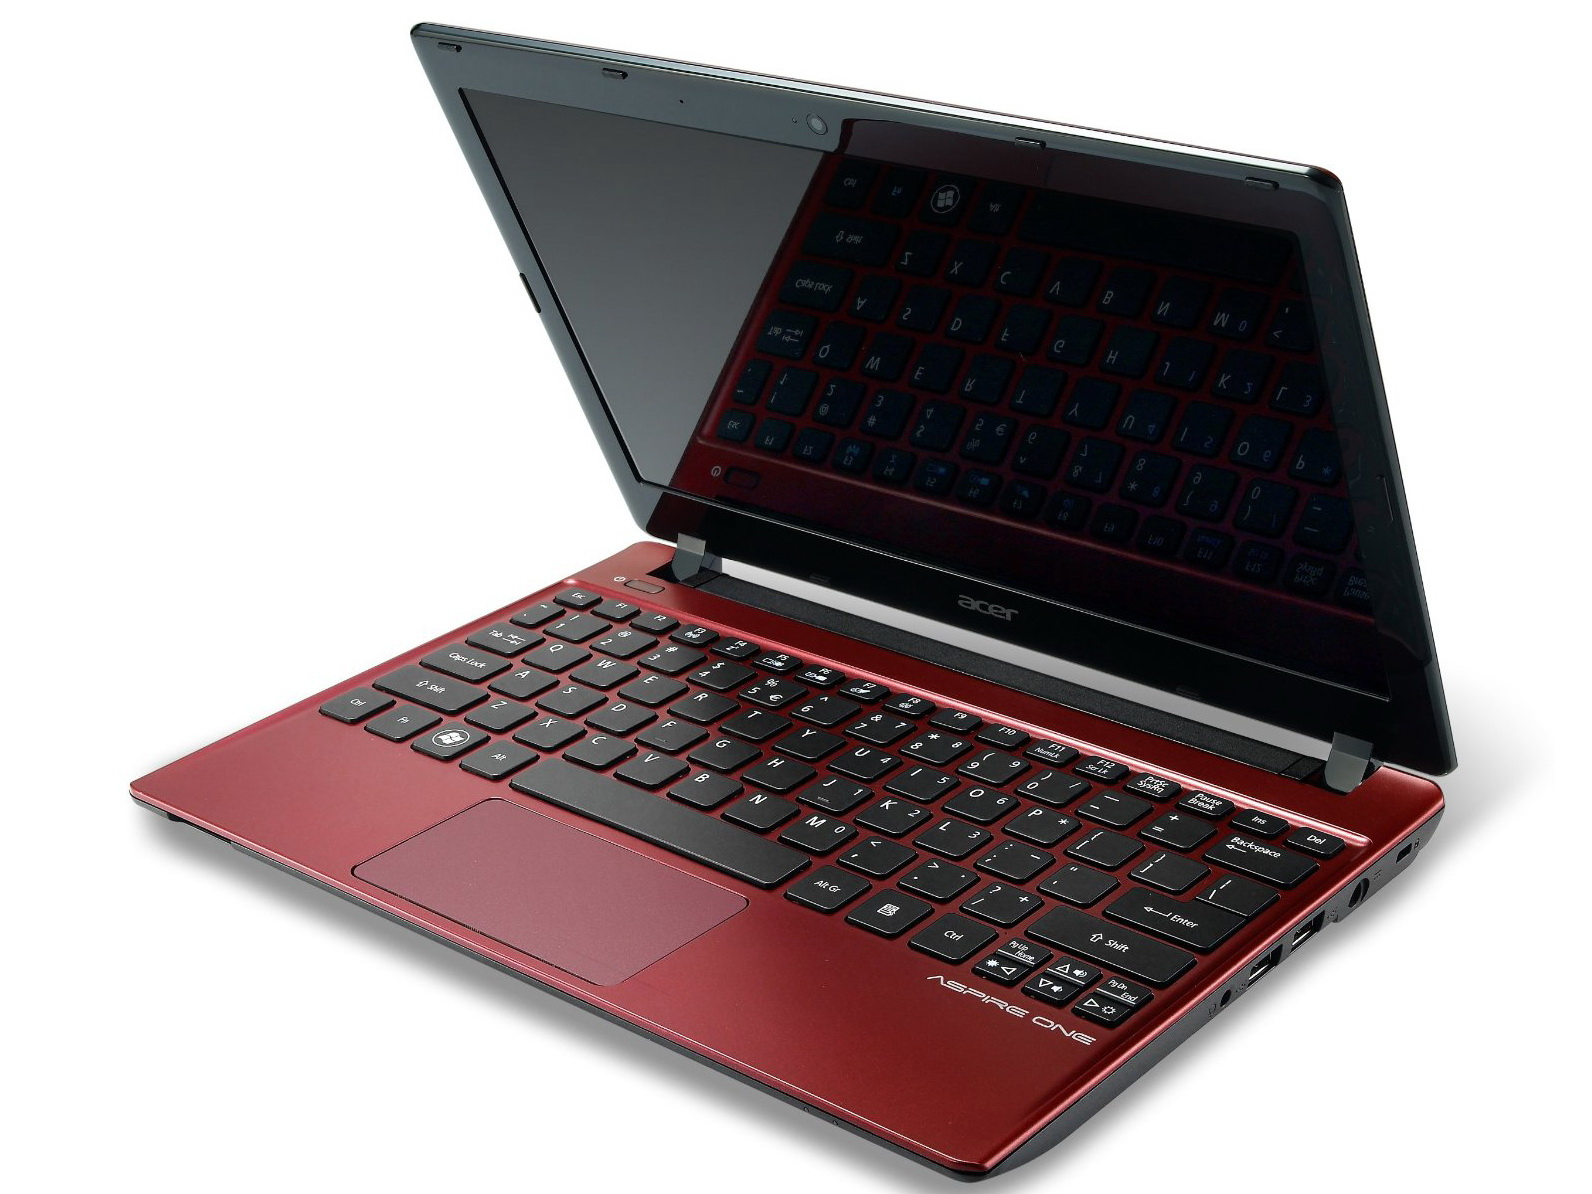 Acer 116 Zoll Aspire One 756 Fur 350 Euro